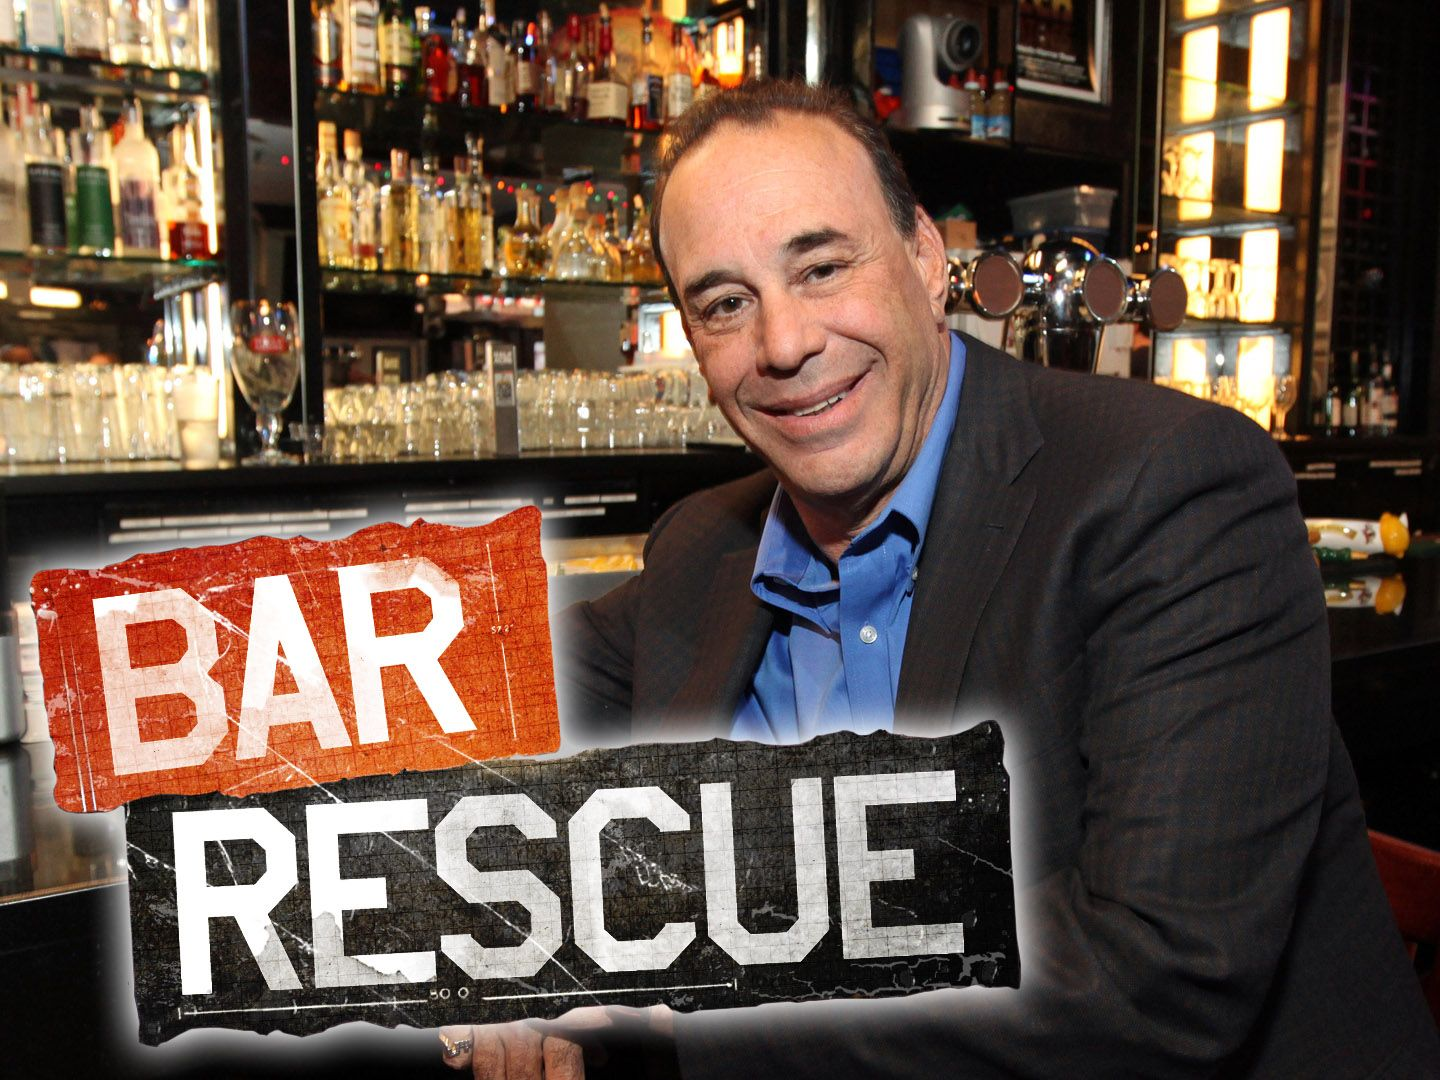 Bar Rescue If You Like Kitchen Nightmares Or Restaurant